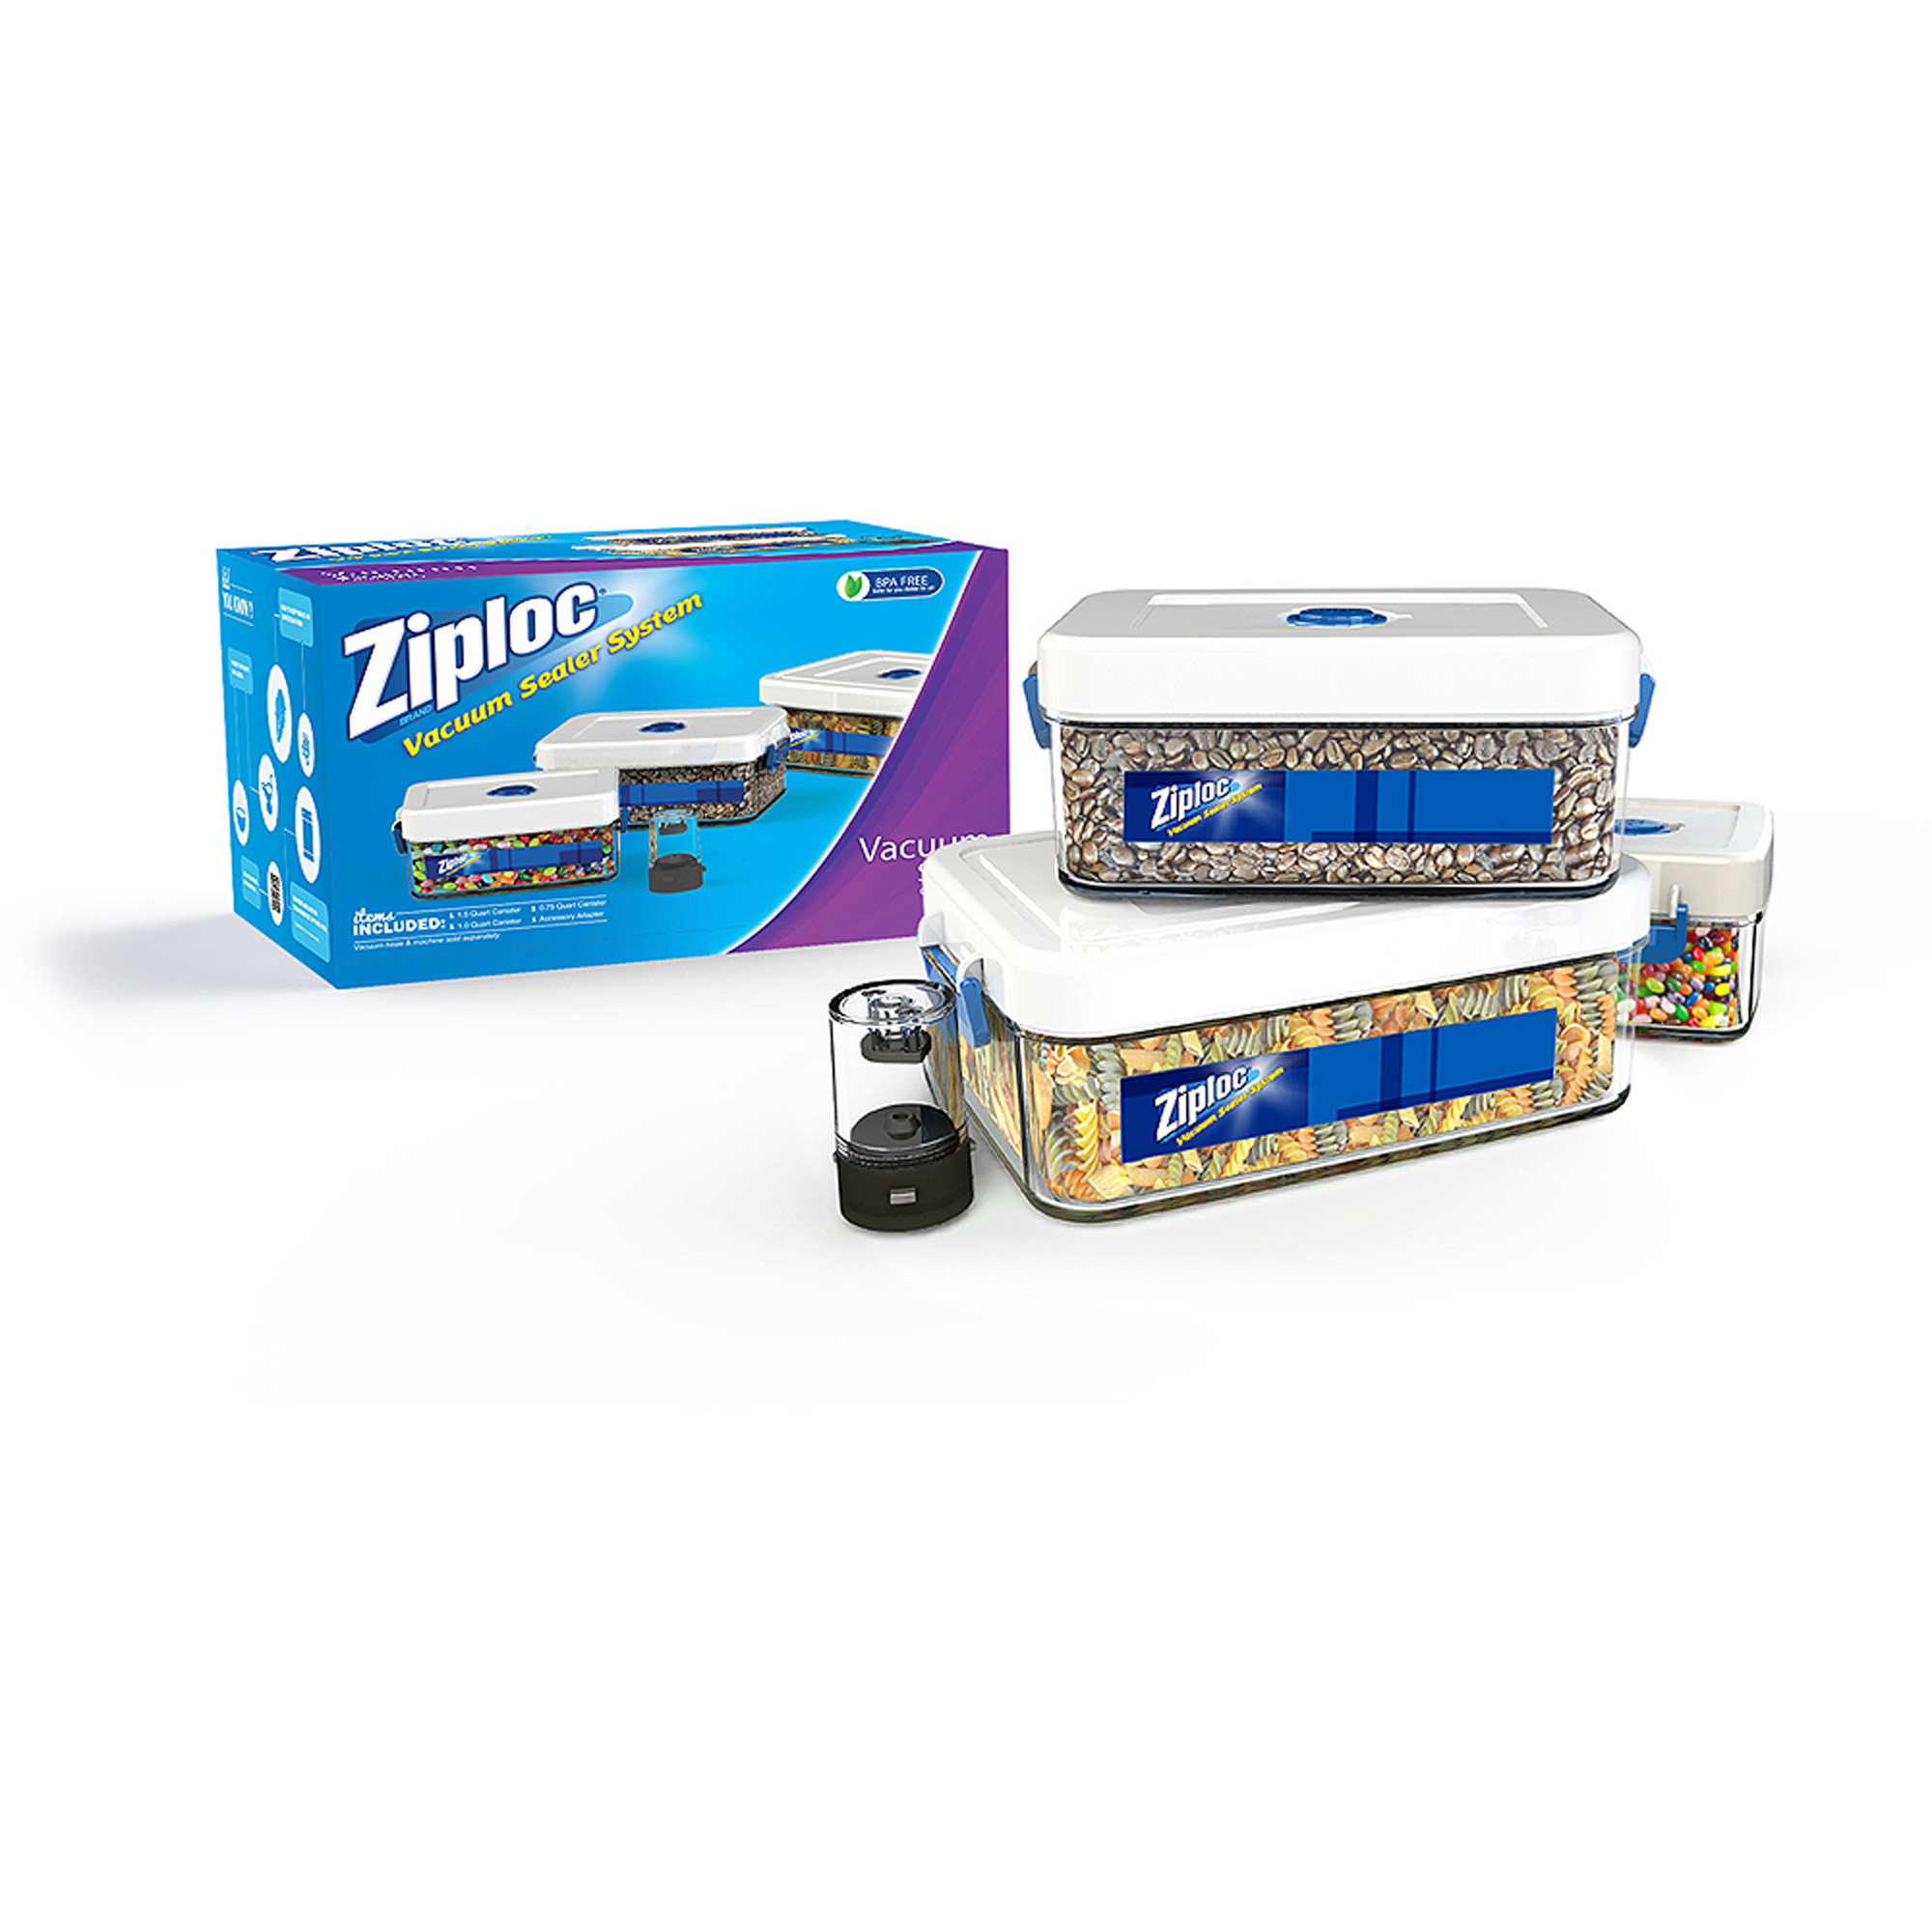 Ziploc 3-Piece Canister Set with .75L, 1.0L, 1.5L and Adapter